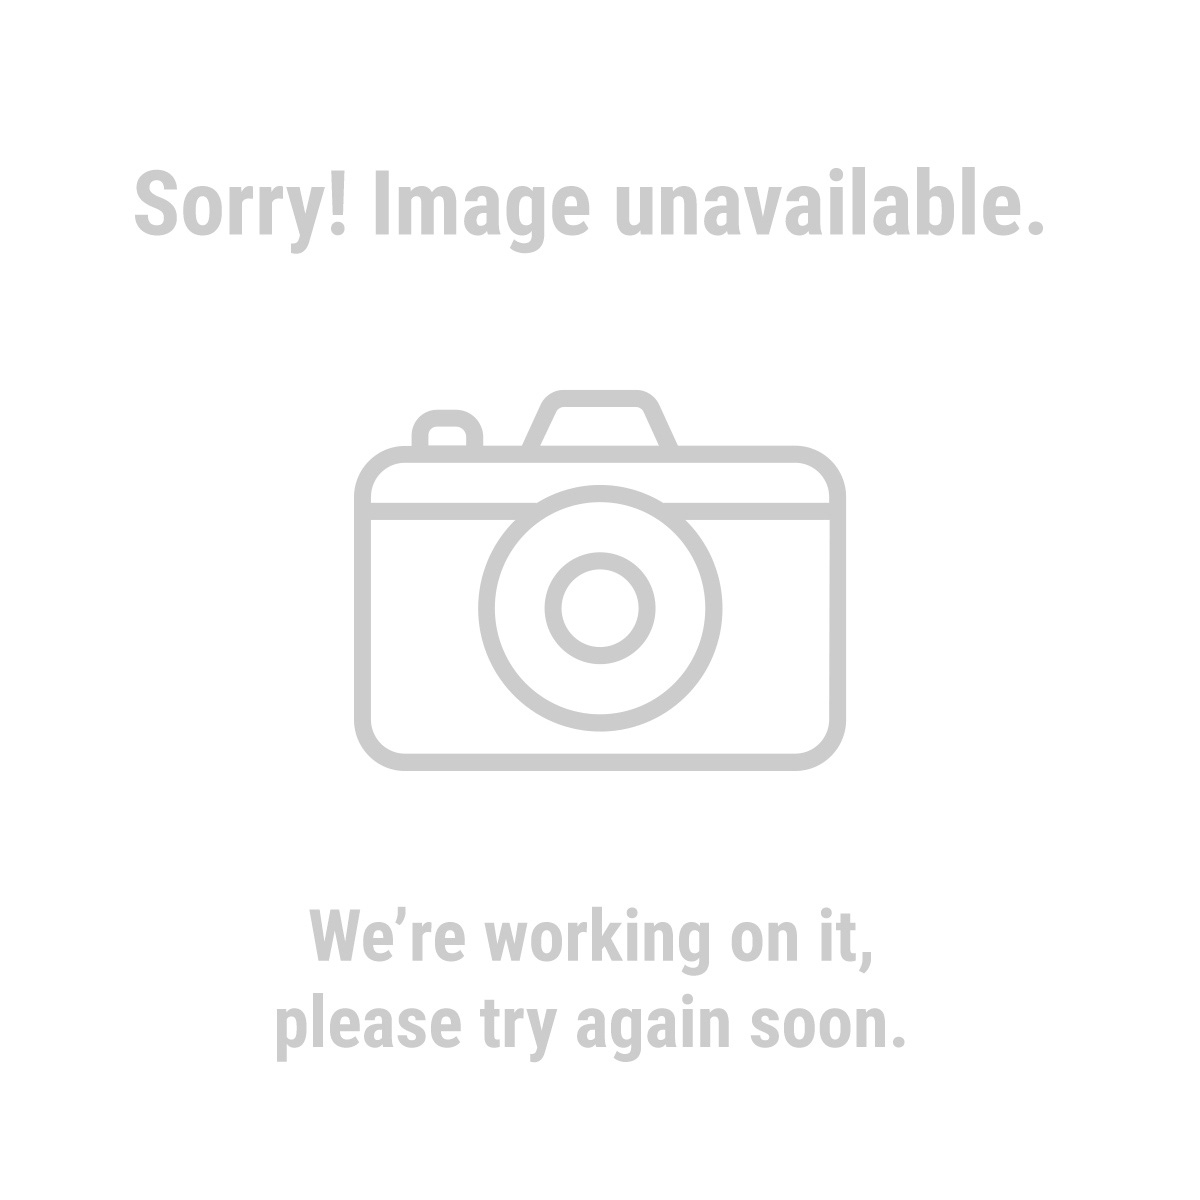 Haul-Master 69422 8 In. Inner Tube